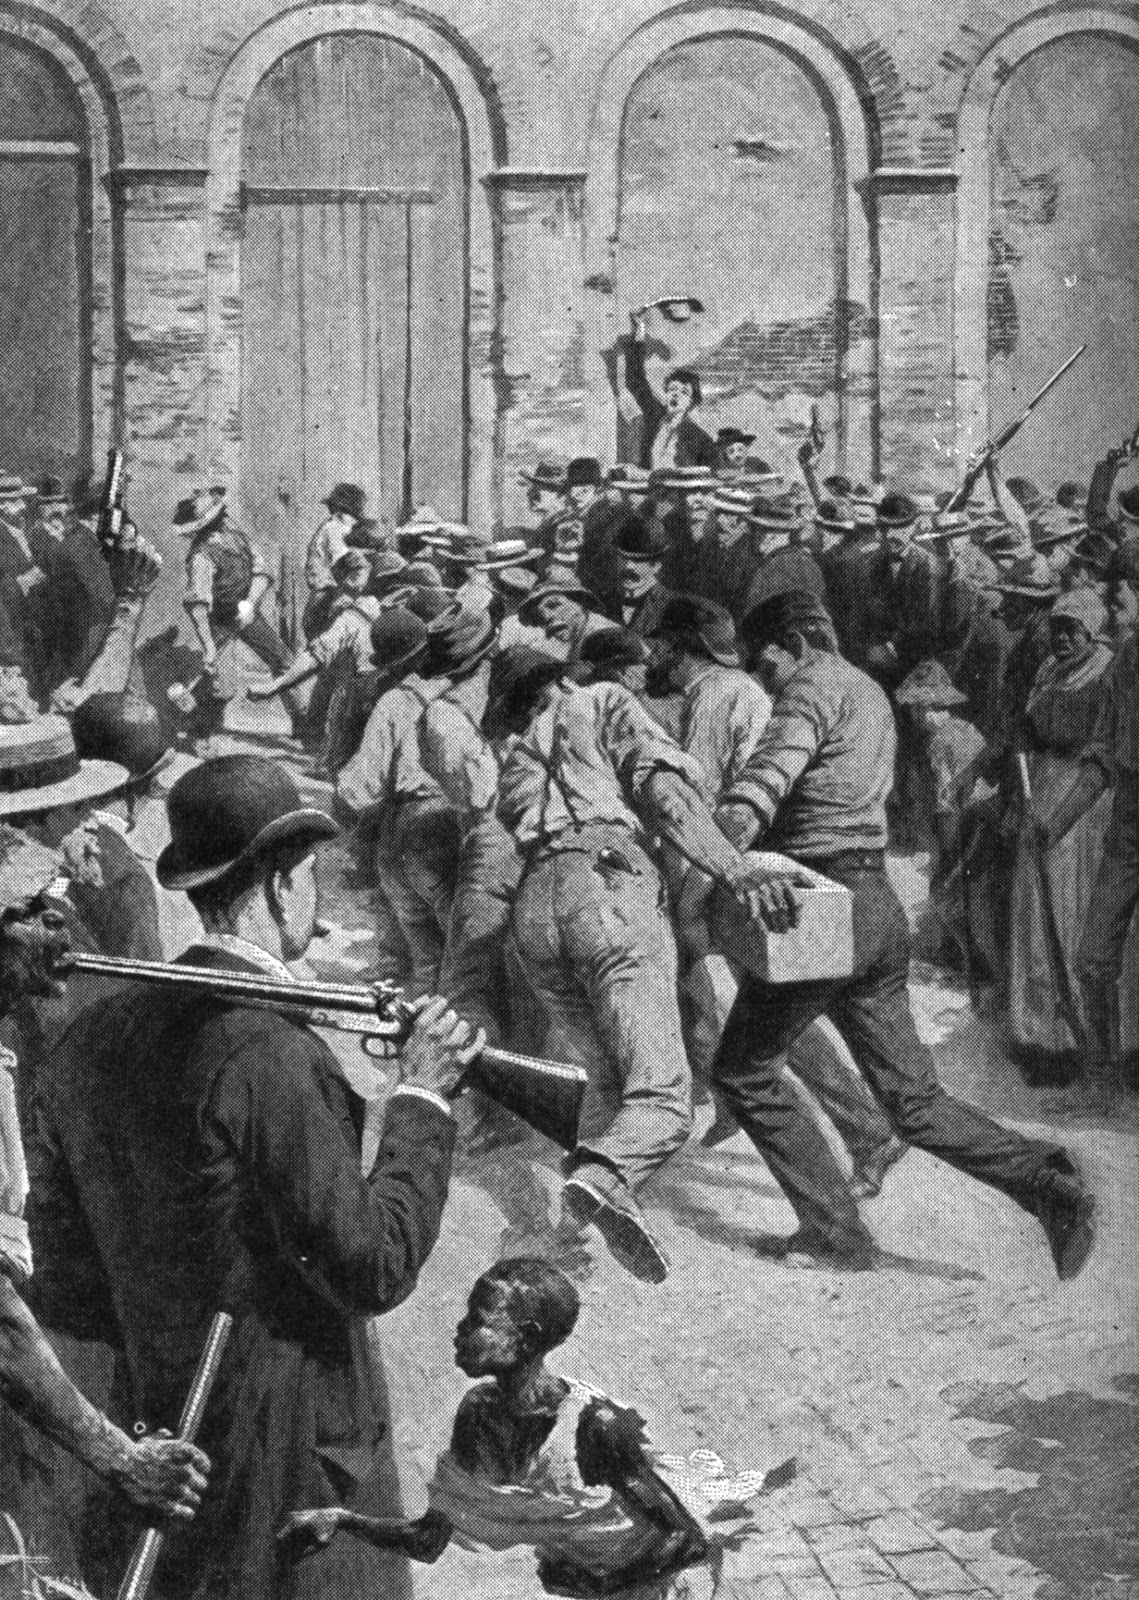 Mob Vengeance in 1891 New Orleans - Tempt Me Not...